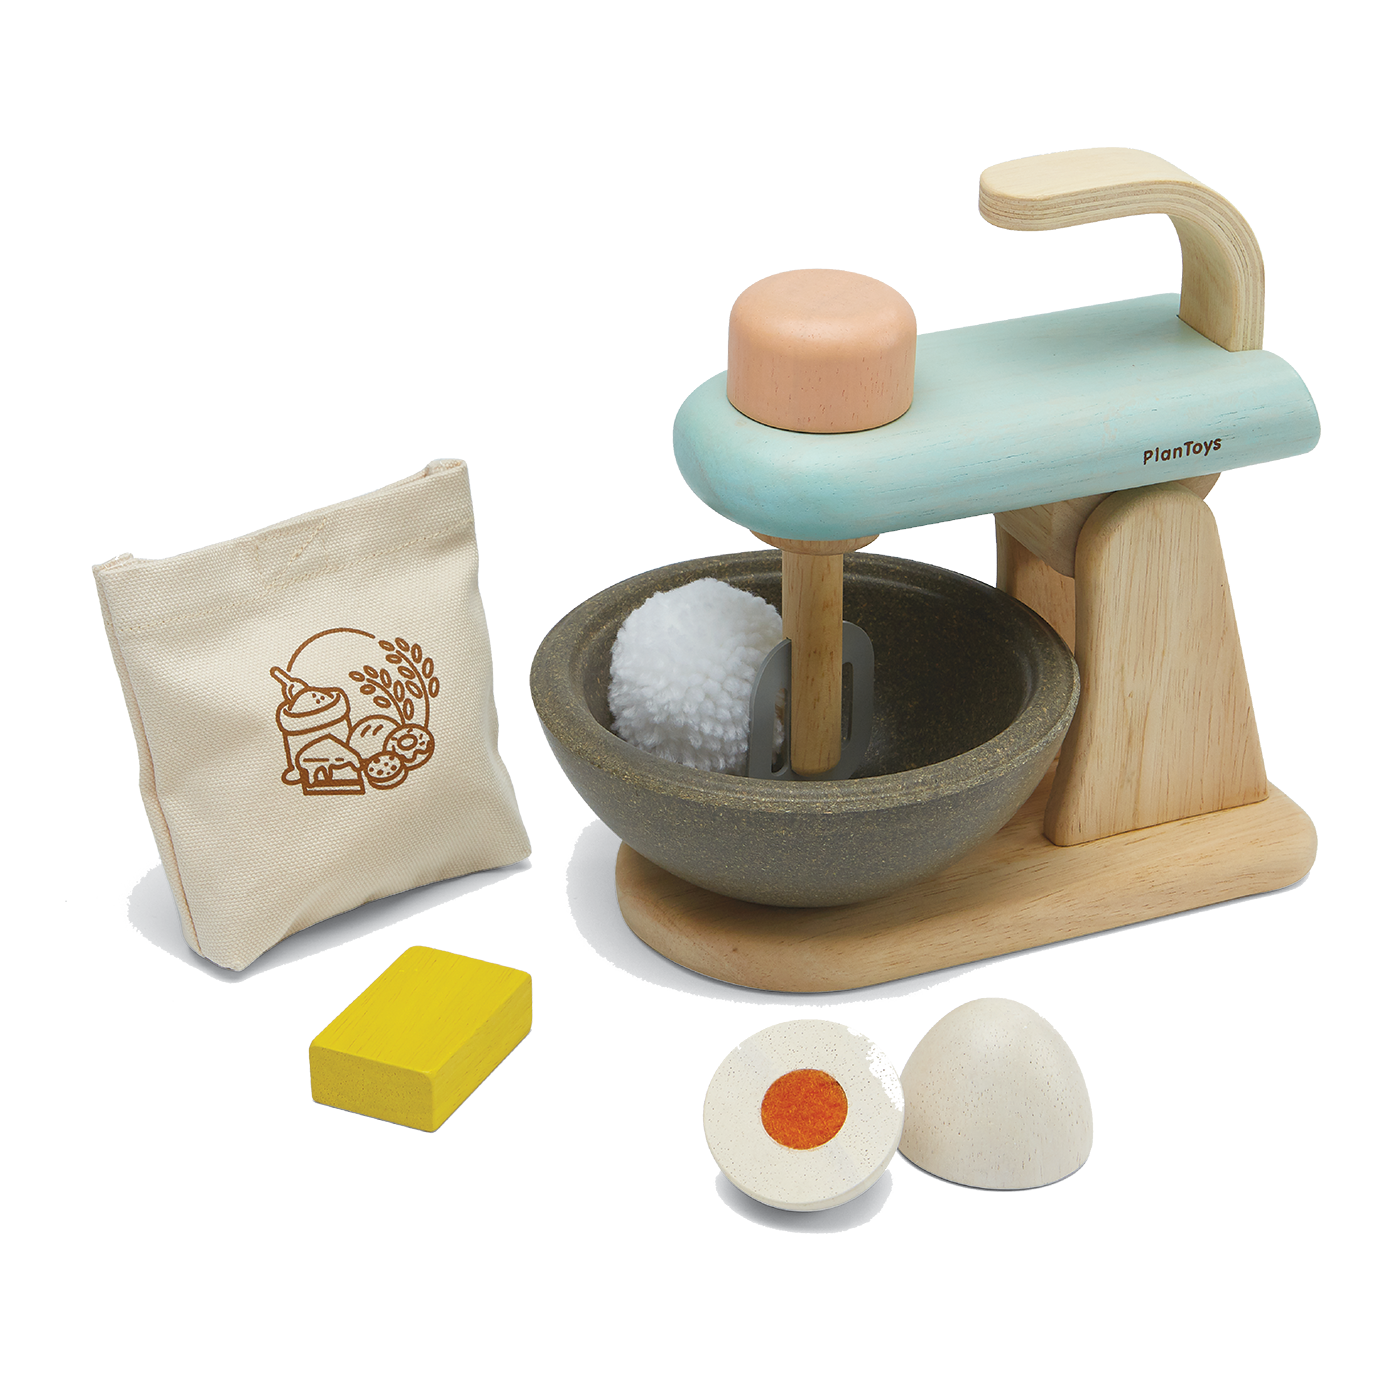 3624_PlanToys_STAND_MIXER_SET_Pretend_Play_2yrs_Emotion_Language_and_Communications_Imagination_Social_Coordination_Creative_Wooden_toys_Education_toys_Safety_Toys_Non-toxic_0.png